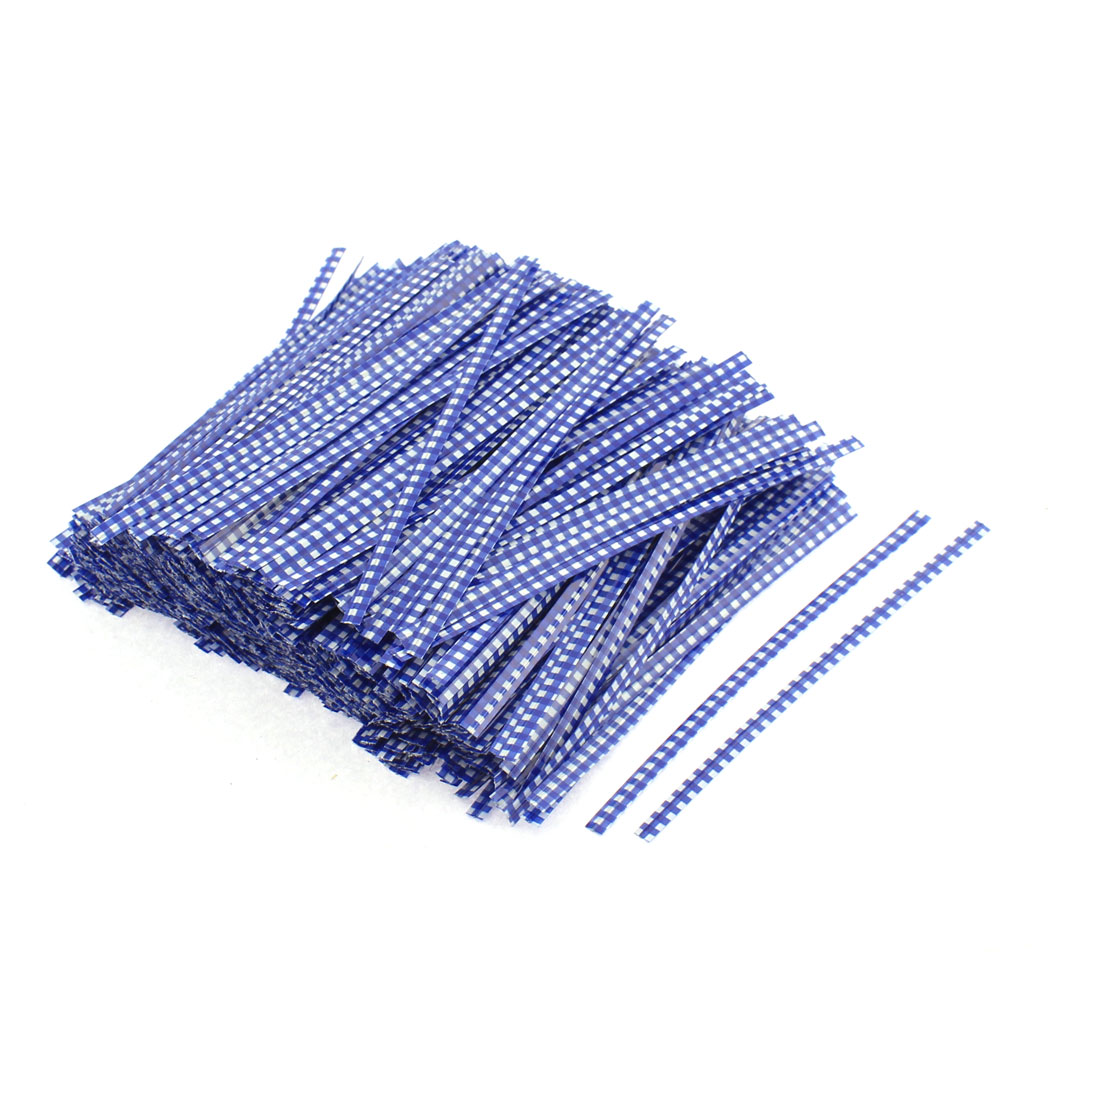 Metallic Grid Pattern Candy Bags Packaging Twist Ties Blue White 1200PCS